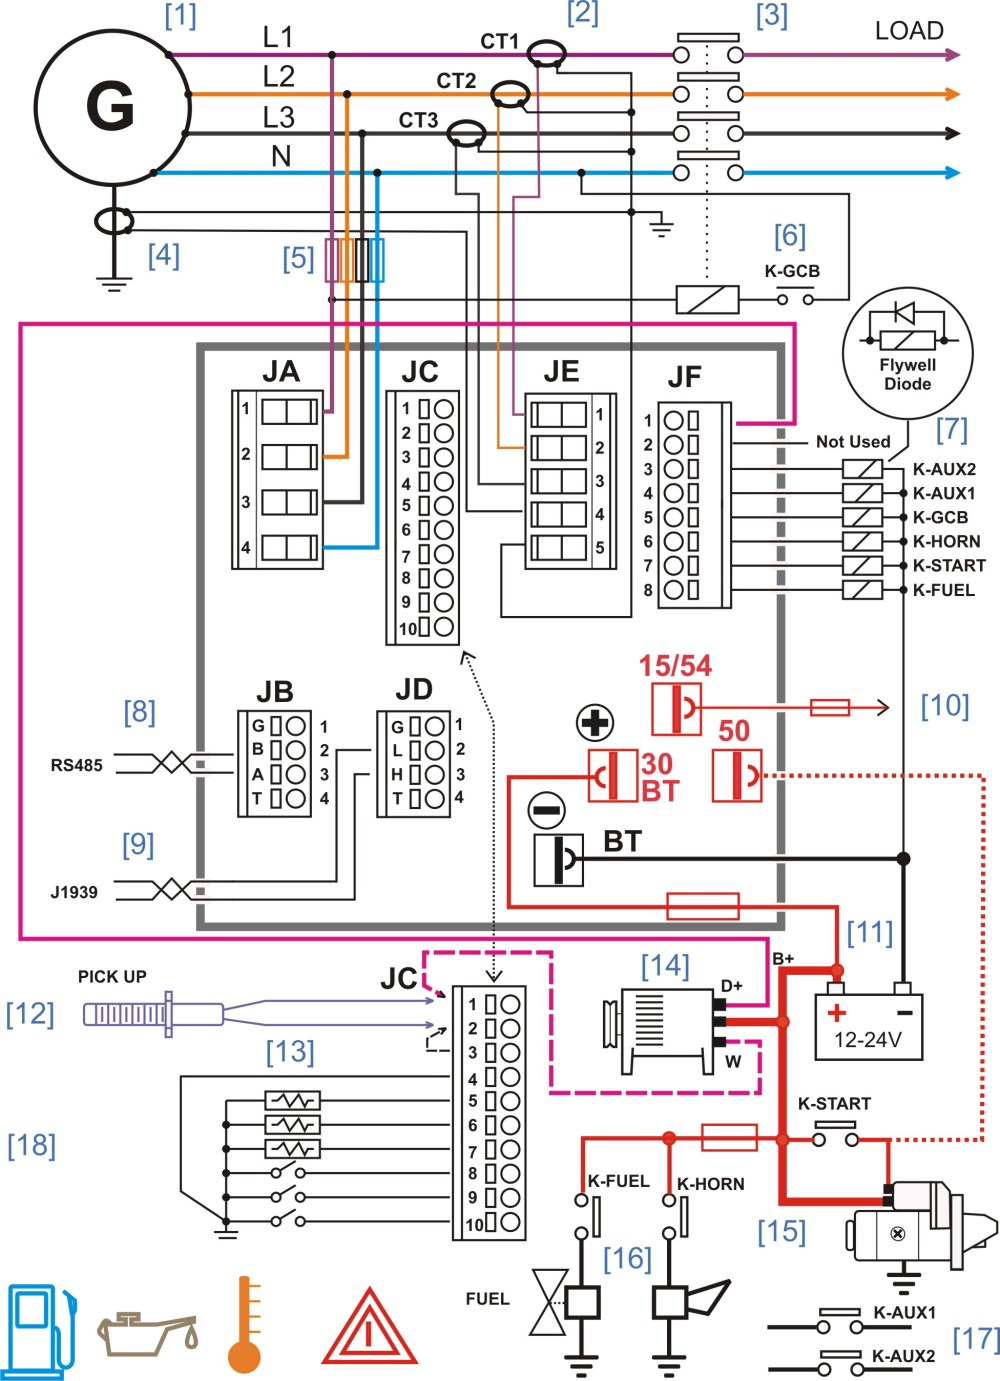 medium resolution of generator controller wiring diagram generator controllers generator engine control wiring diagram generator controller wiring diagram